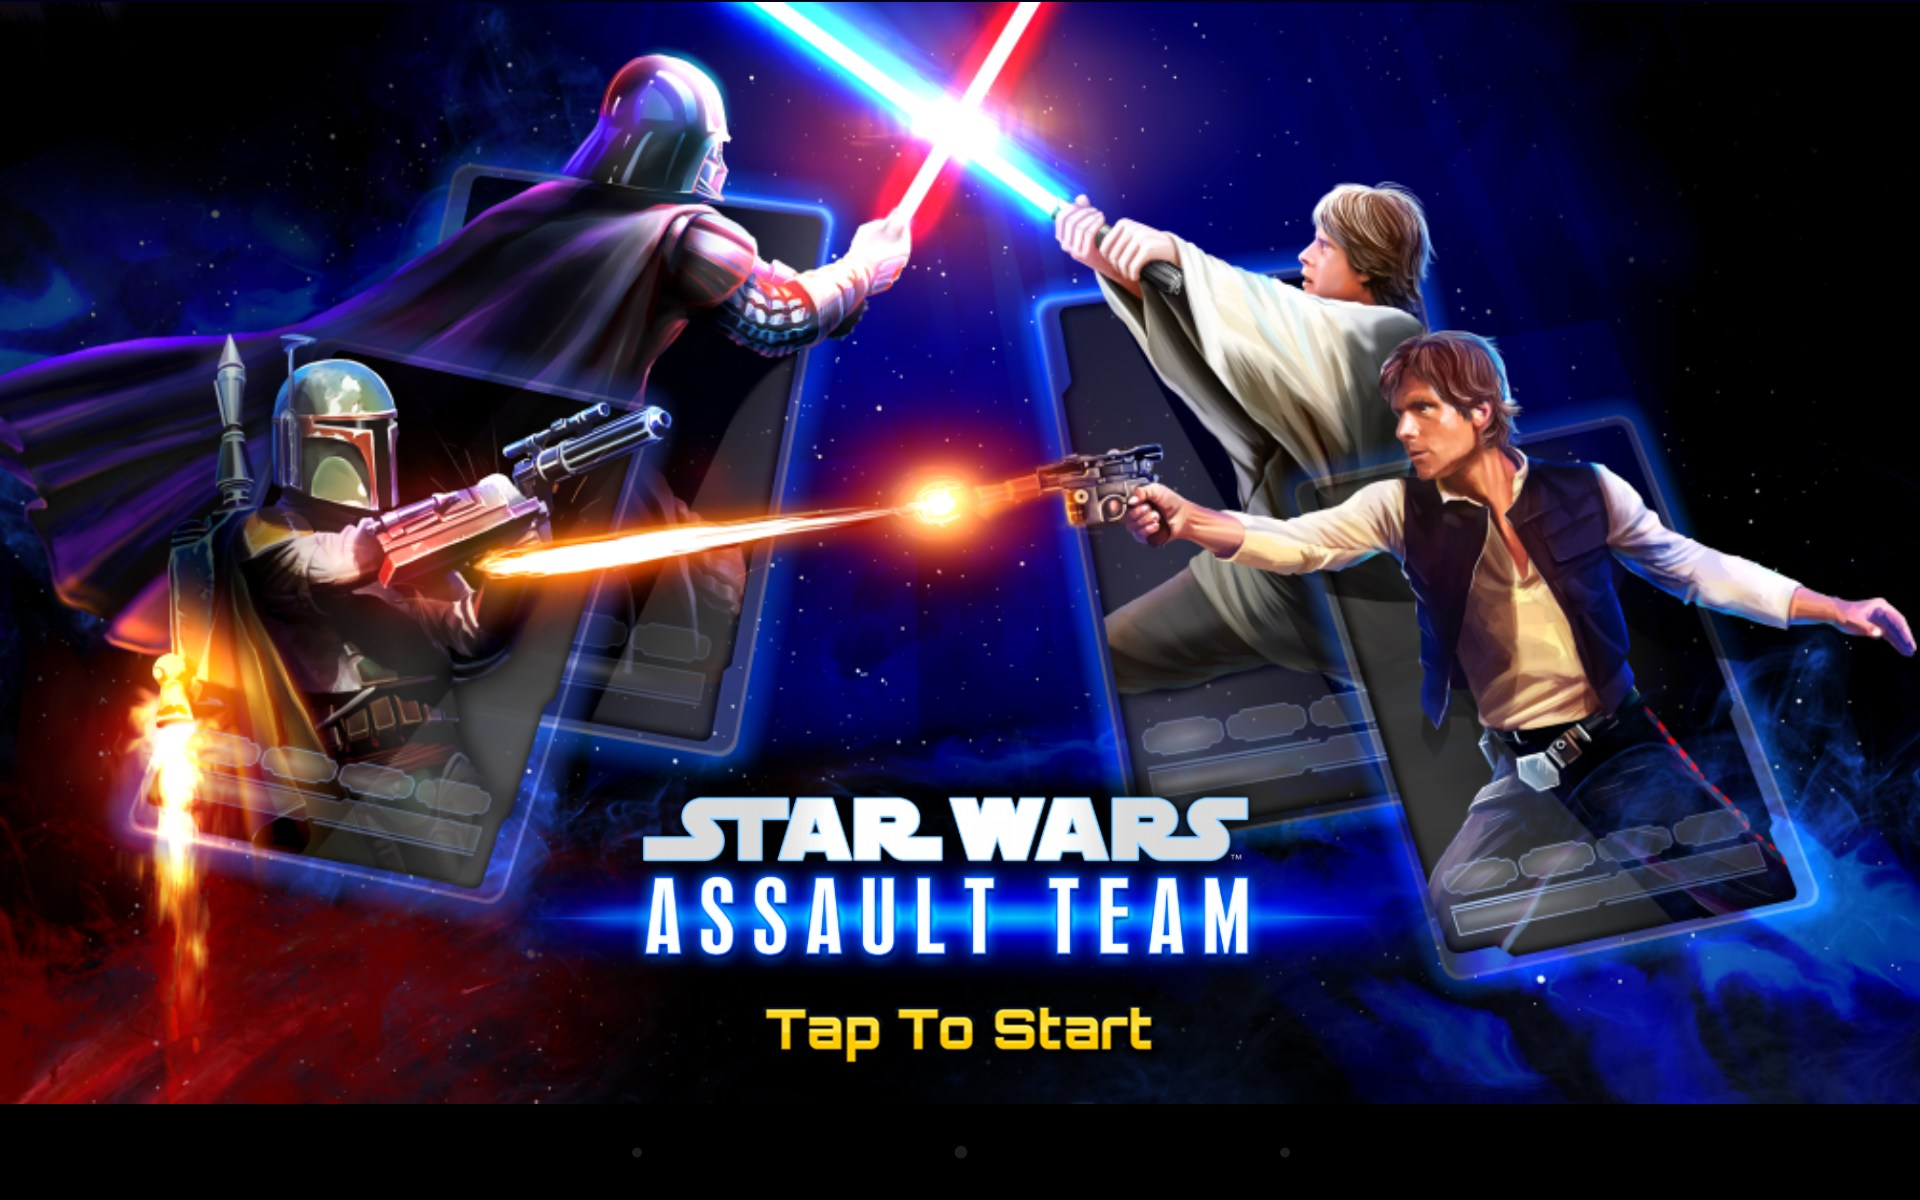 Star Wars: Assault Team turn-based card game lands on Android